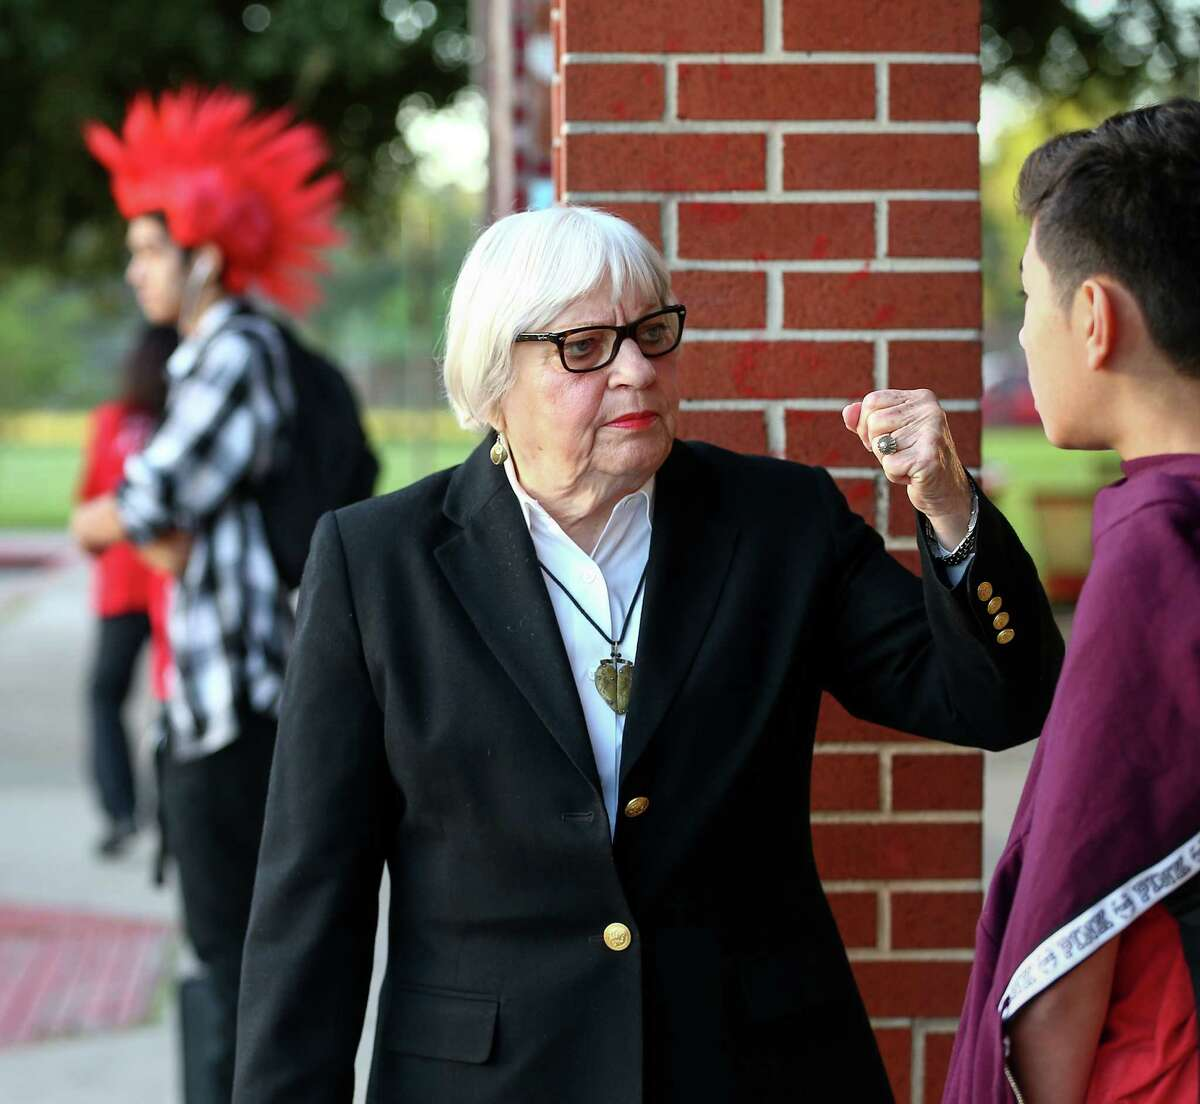 Bertie Simmons, the 82-year-old principal of Furr High School, jokes with Ivan Hernandez before classes begin. The HISD campus was plagued by gangs when she arrived in 2000.